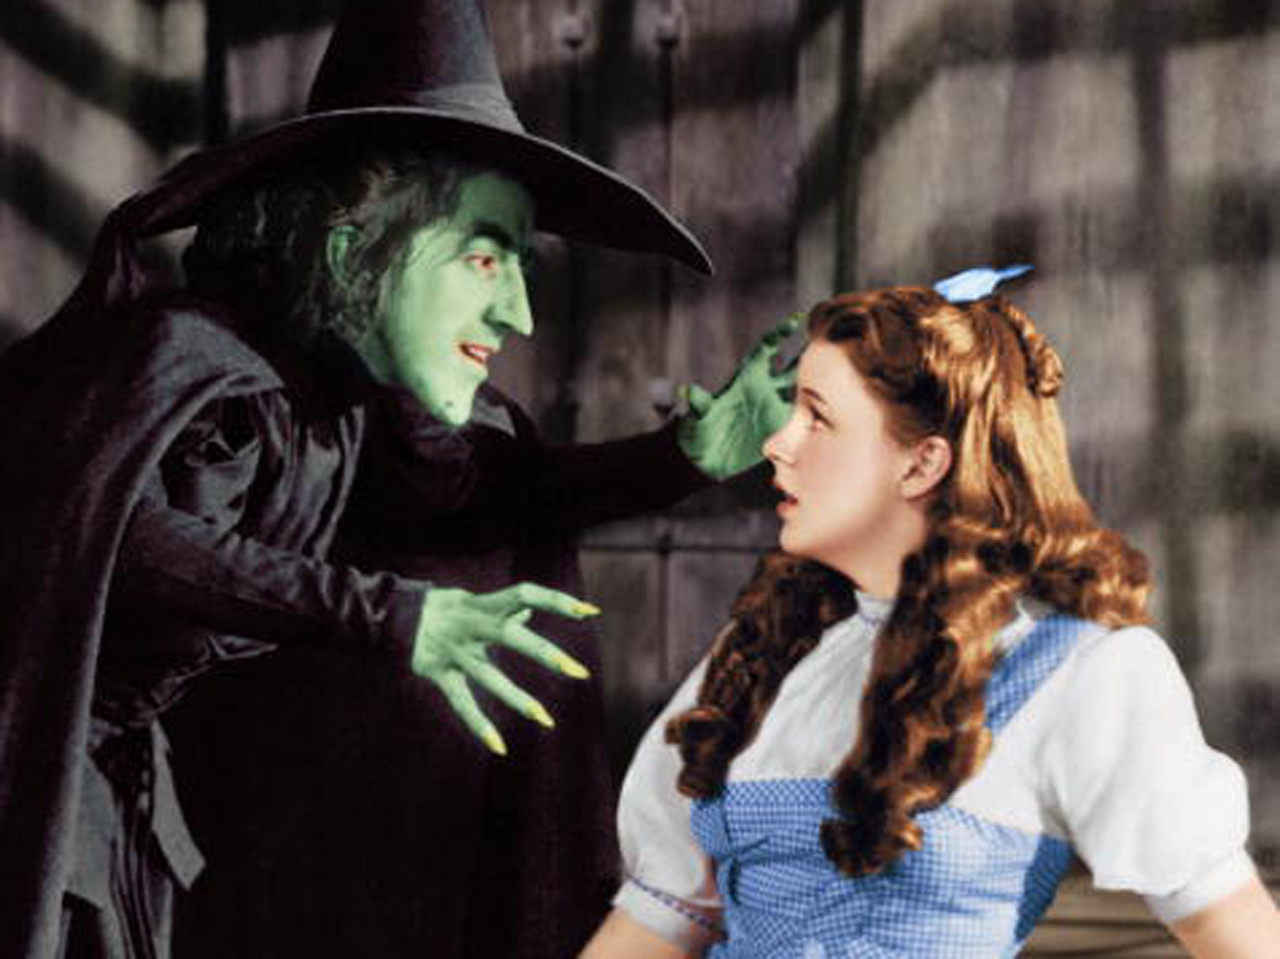 18 Dark Secrets About The Wizard Of Oz - Go Social